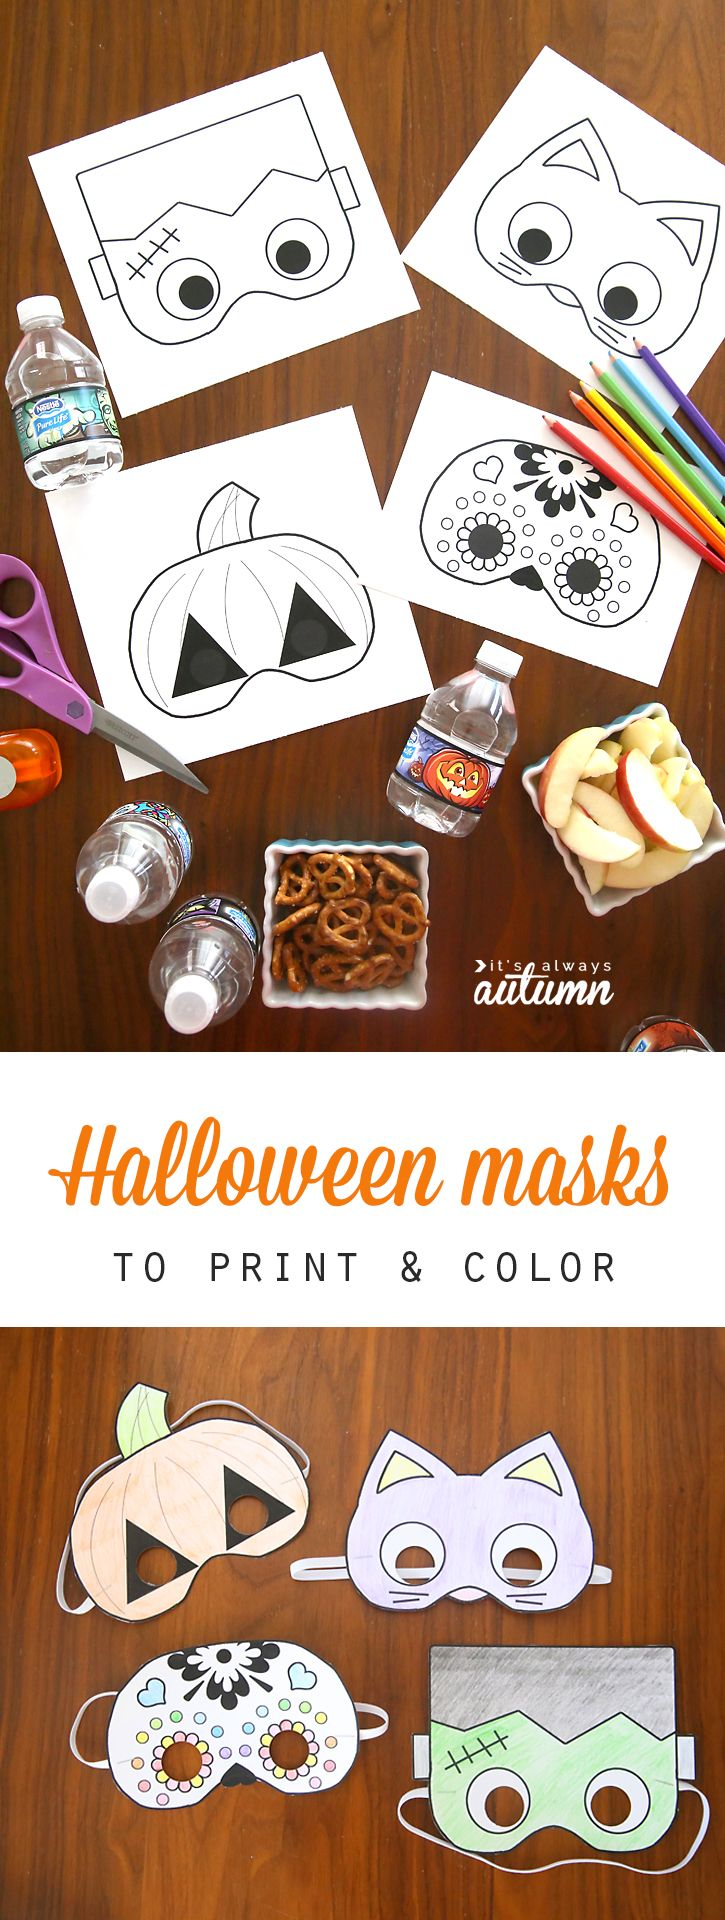 halloween masks to print and color - Halloween Decorations For Kids To Make